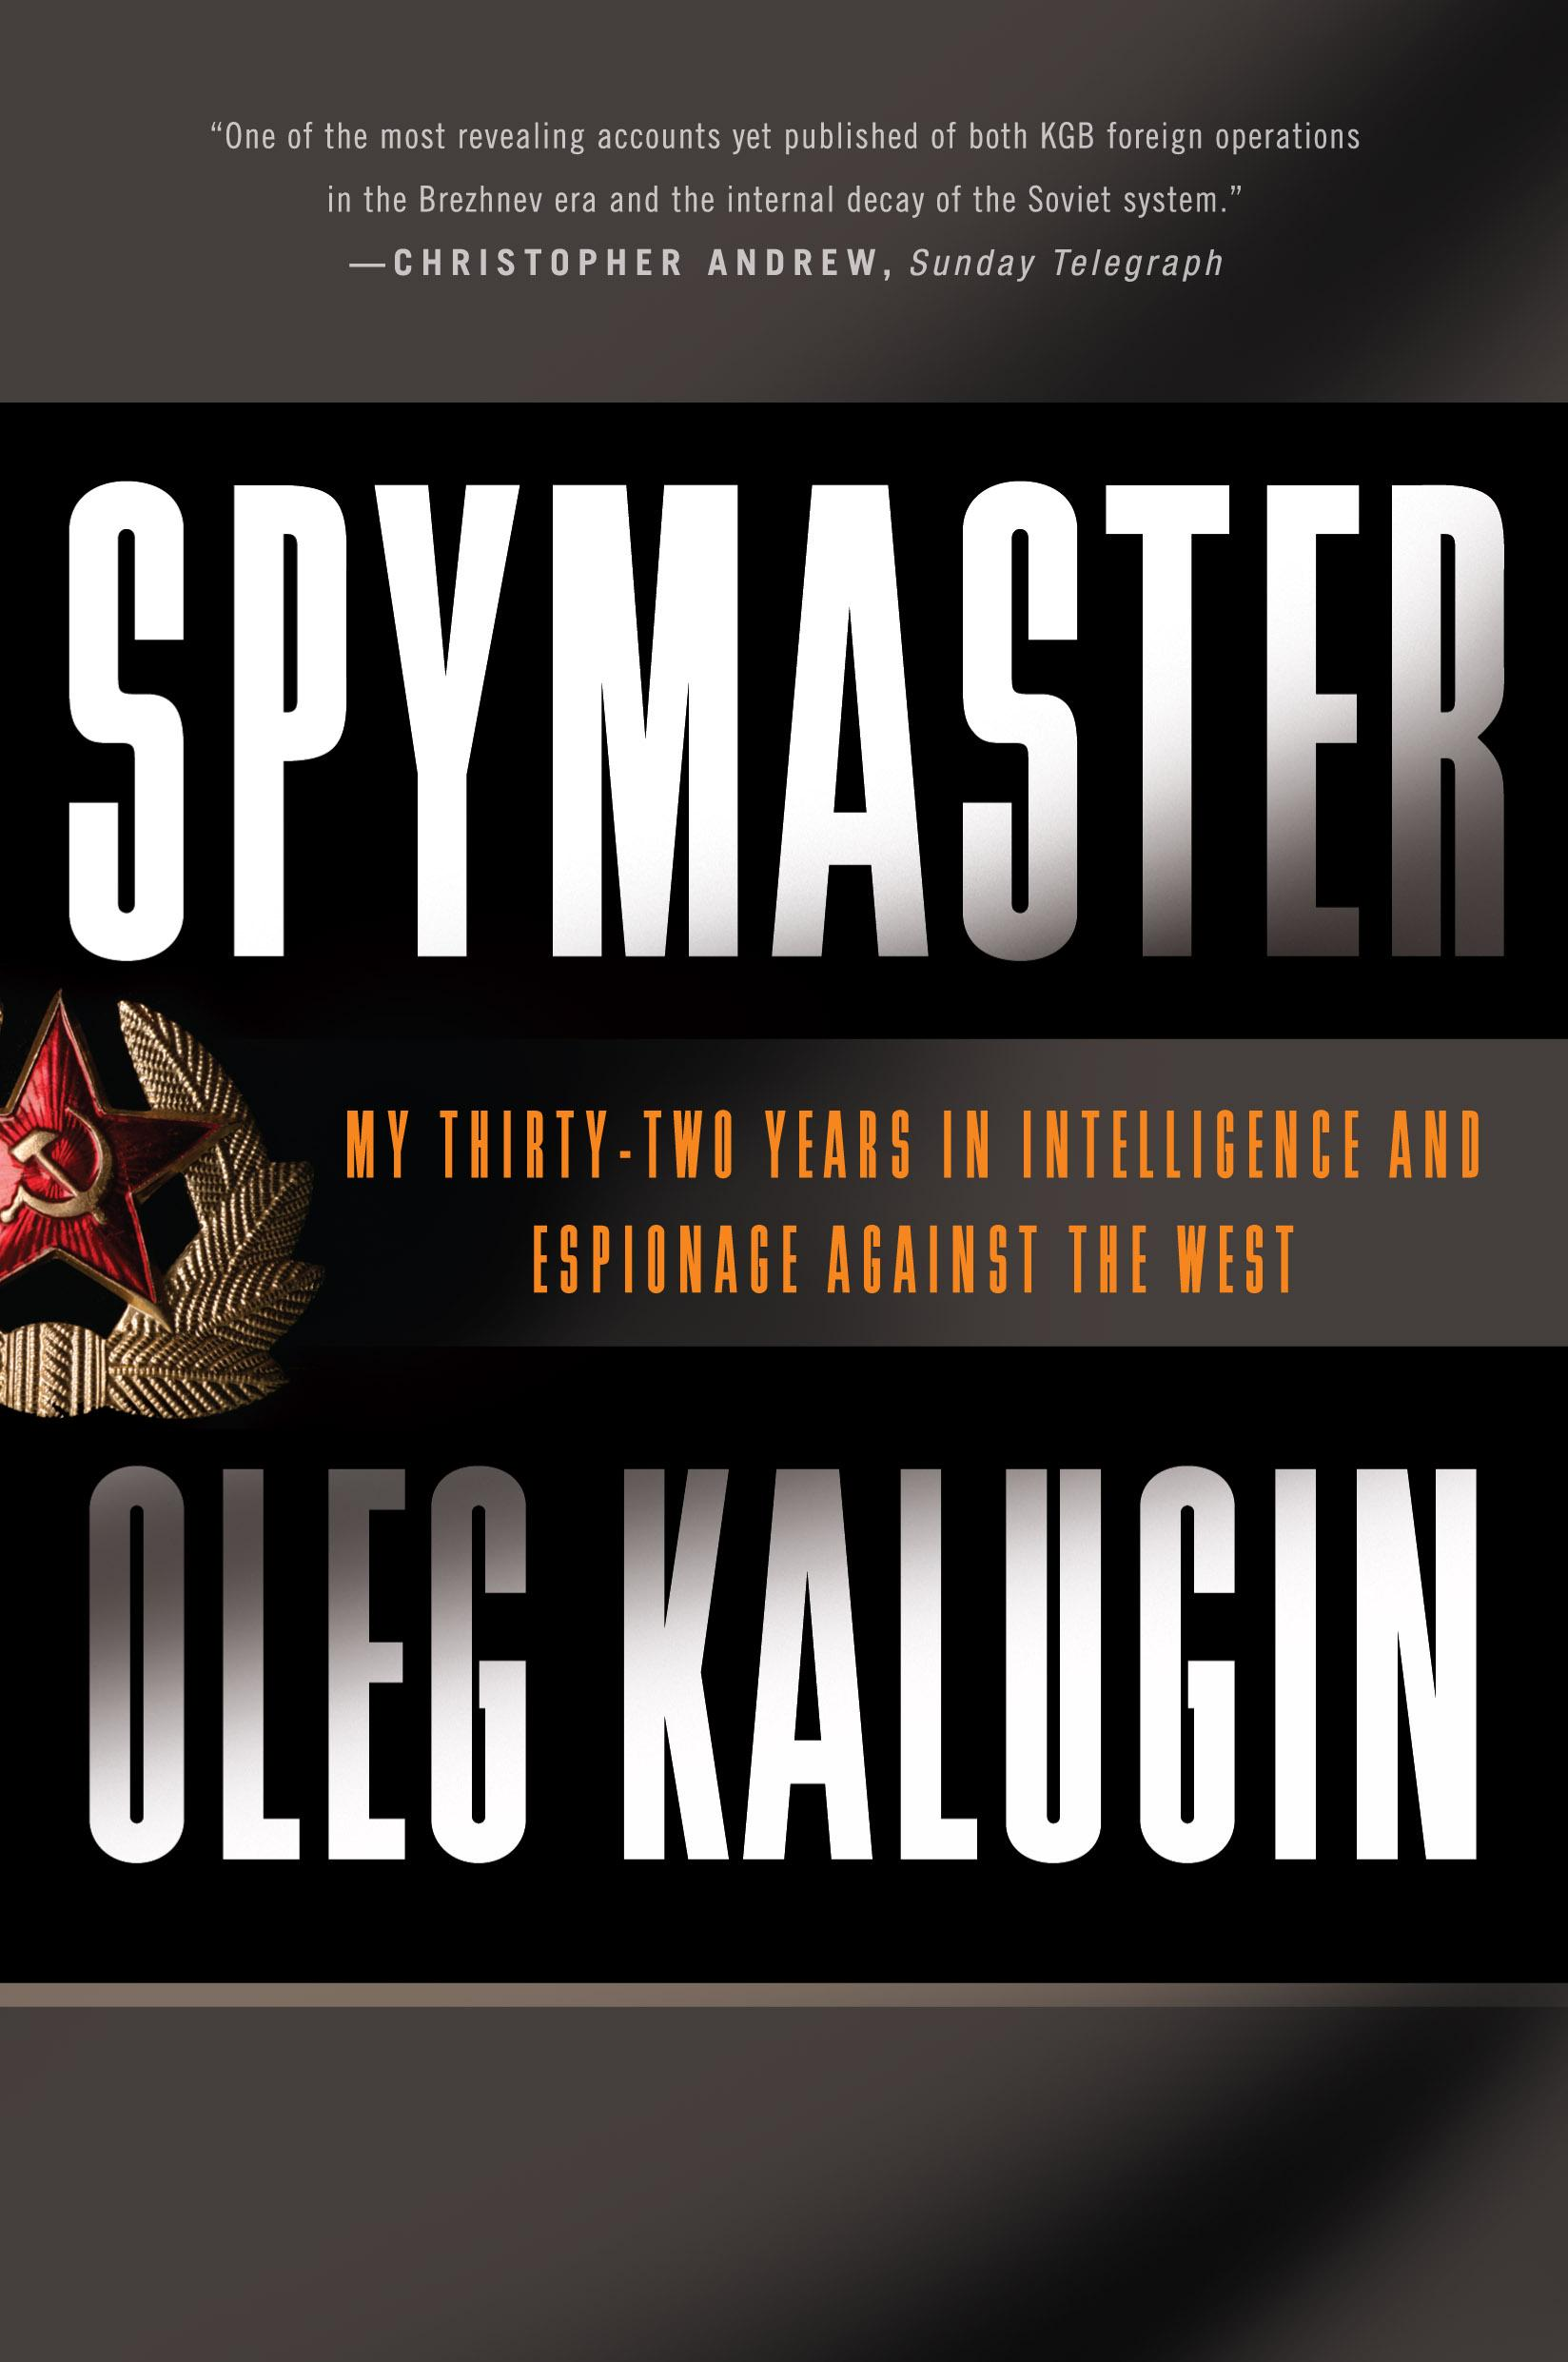 Spymaster My Thirty-two Years in Intelligence and: My Thirty-two Years in Intelligence and Espionage Against the West EB9780786743667